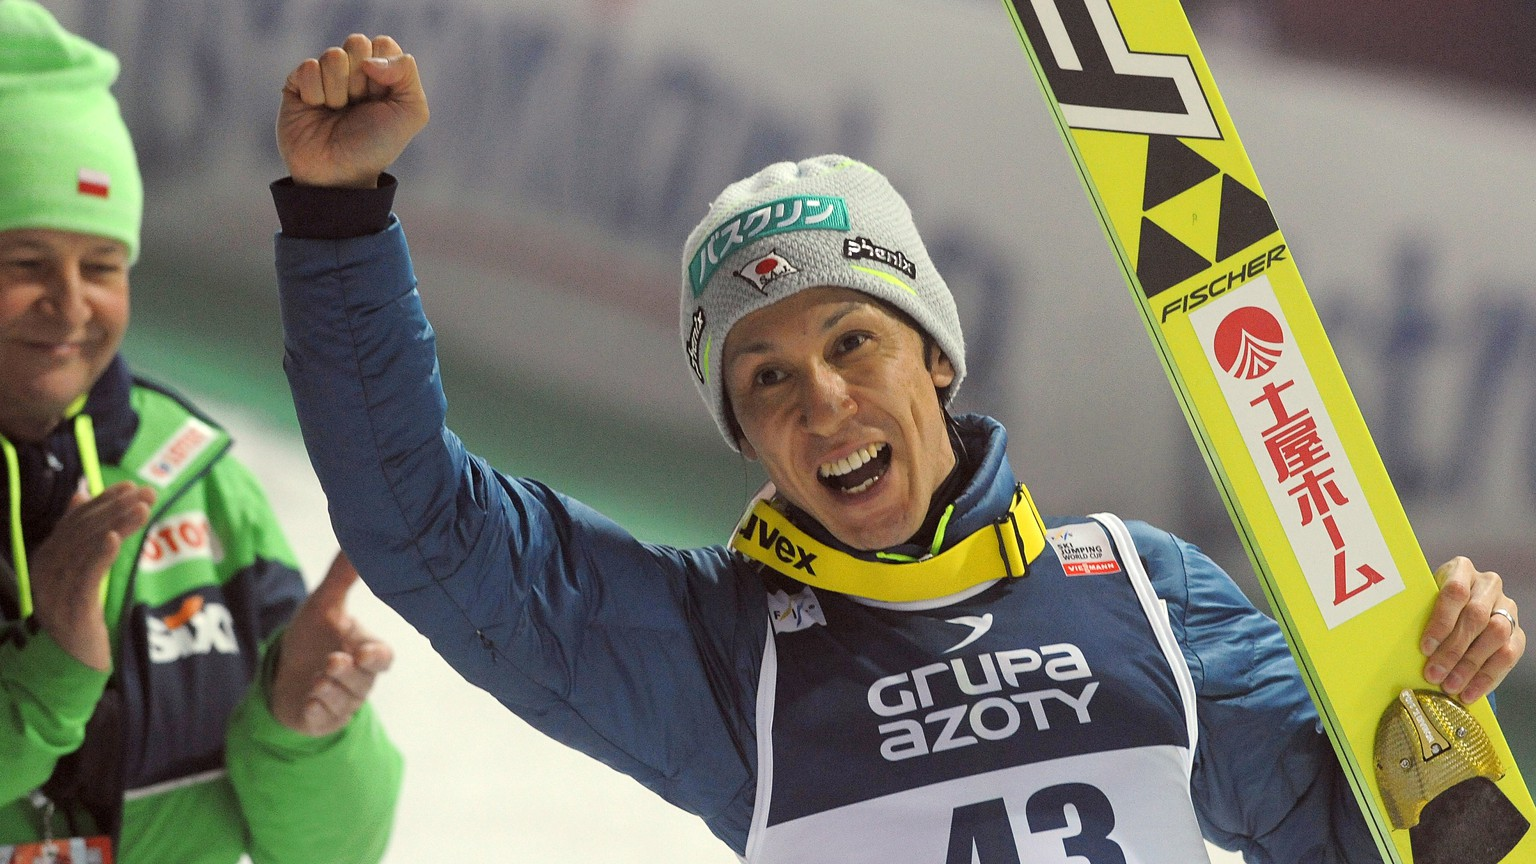 Japan's Noriaki Kasai celebrates his third place in the 34th World Cup Ski Jumping competition, in Wisla, Poland, Friday, March 4, 2016. (AP Photo/Alik Keplicz)